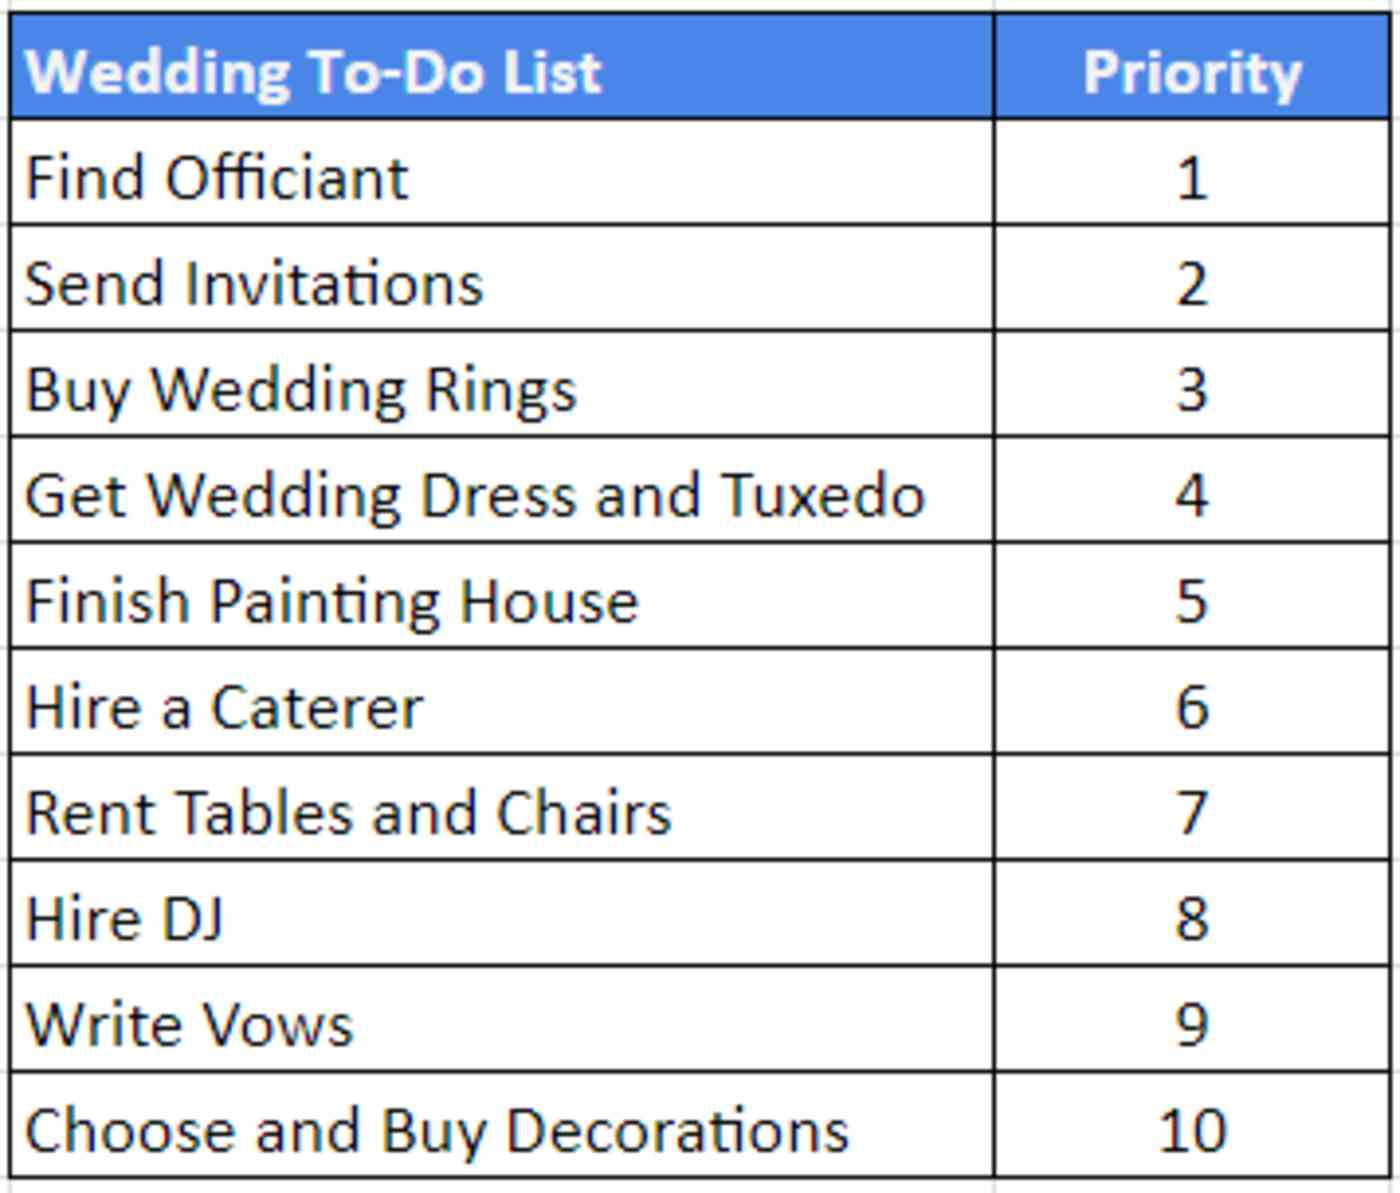 Agile prioritization for wedding to do list